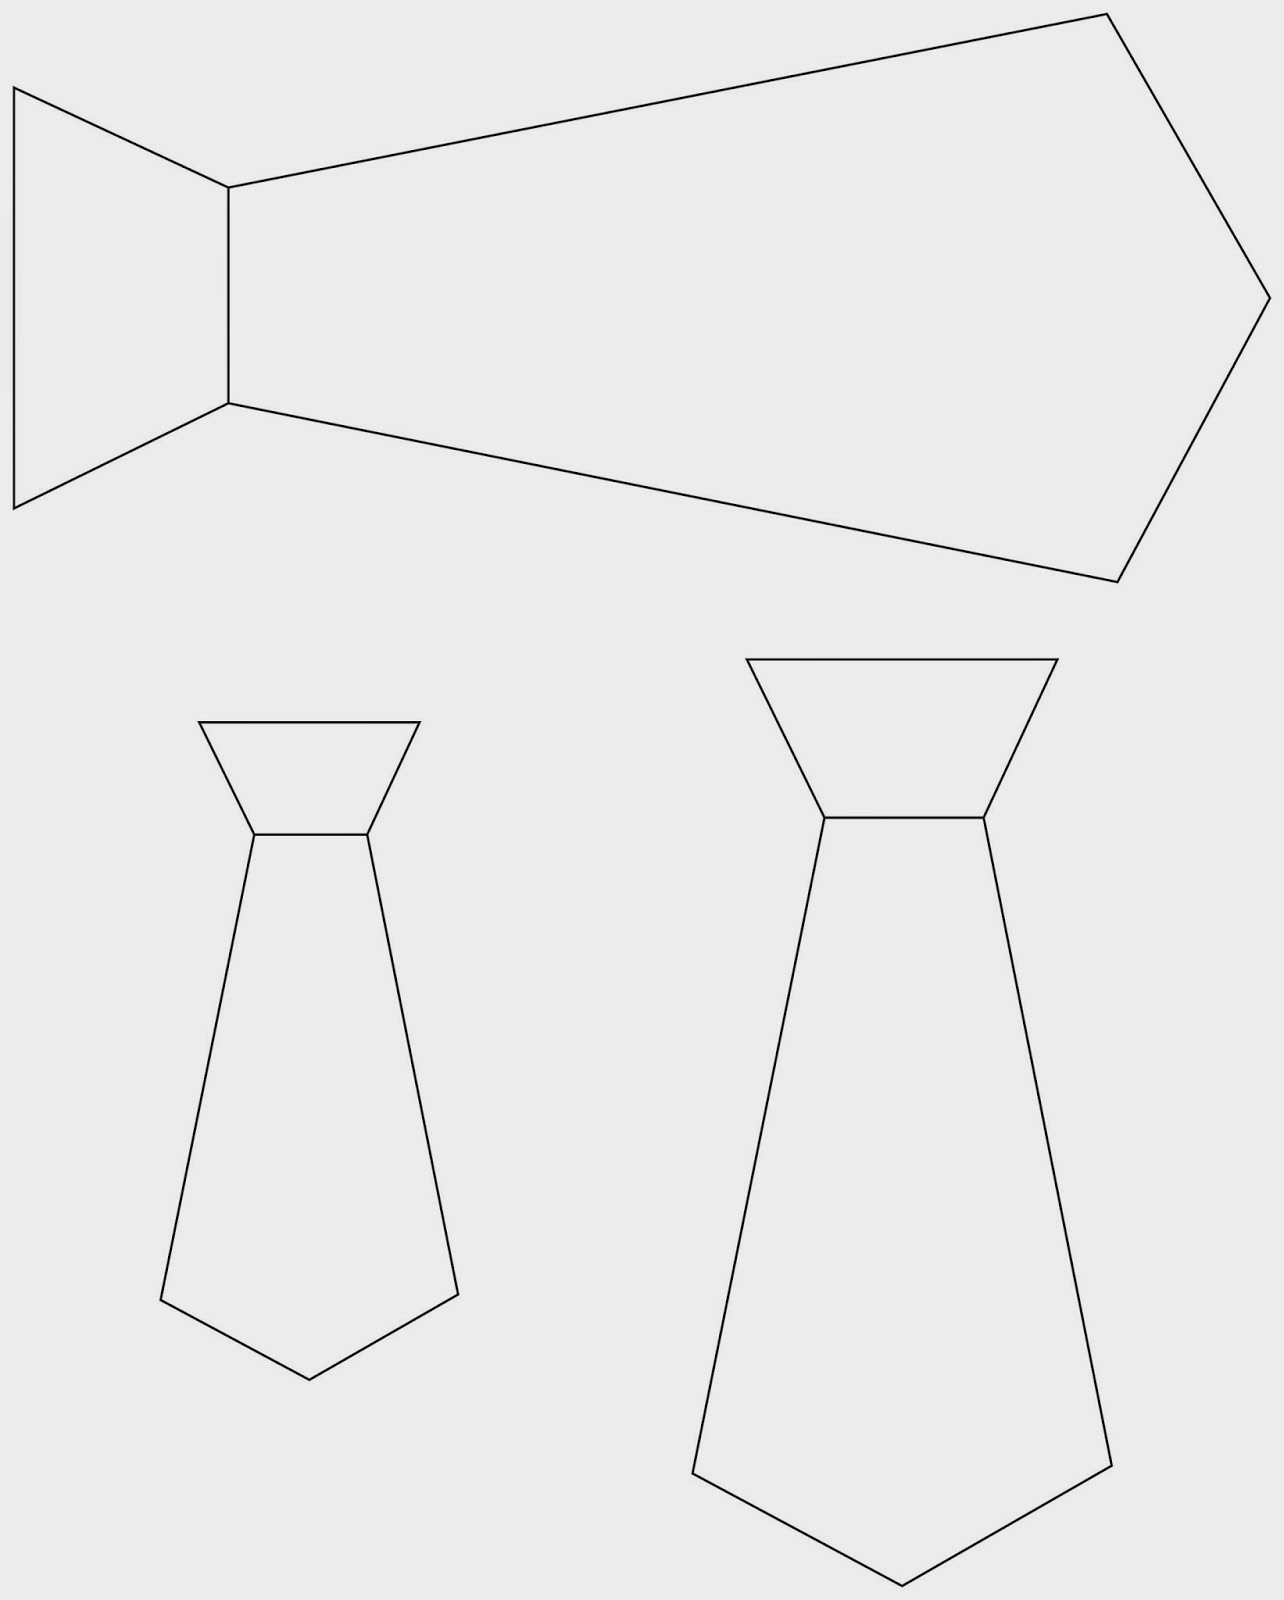 Necktie Template. pin tie clipart outline 15. pin bow tie ...